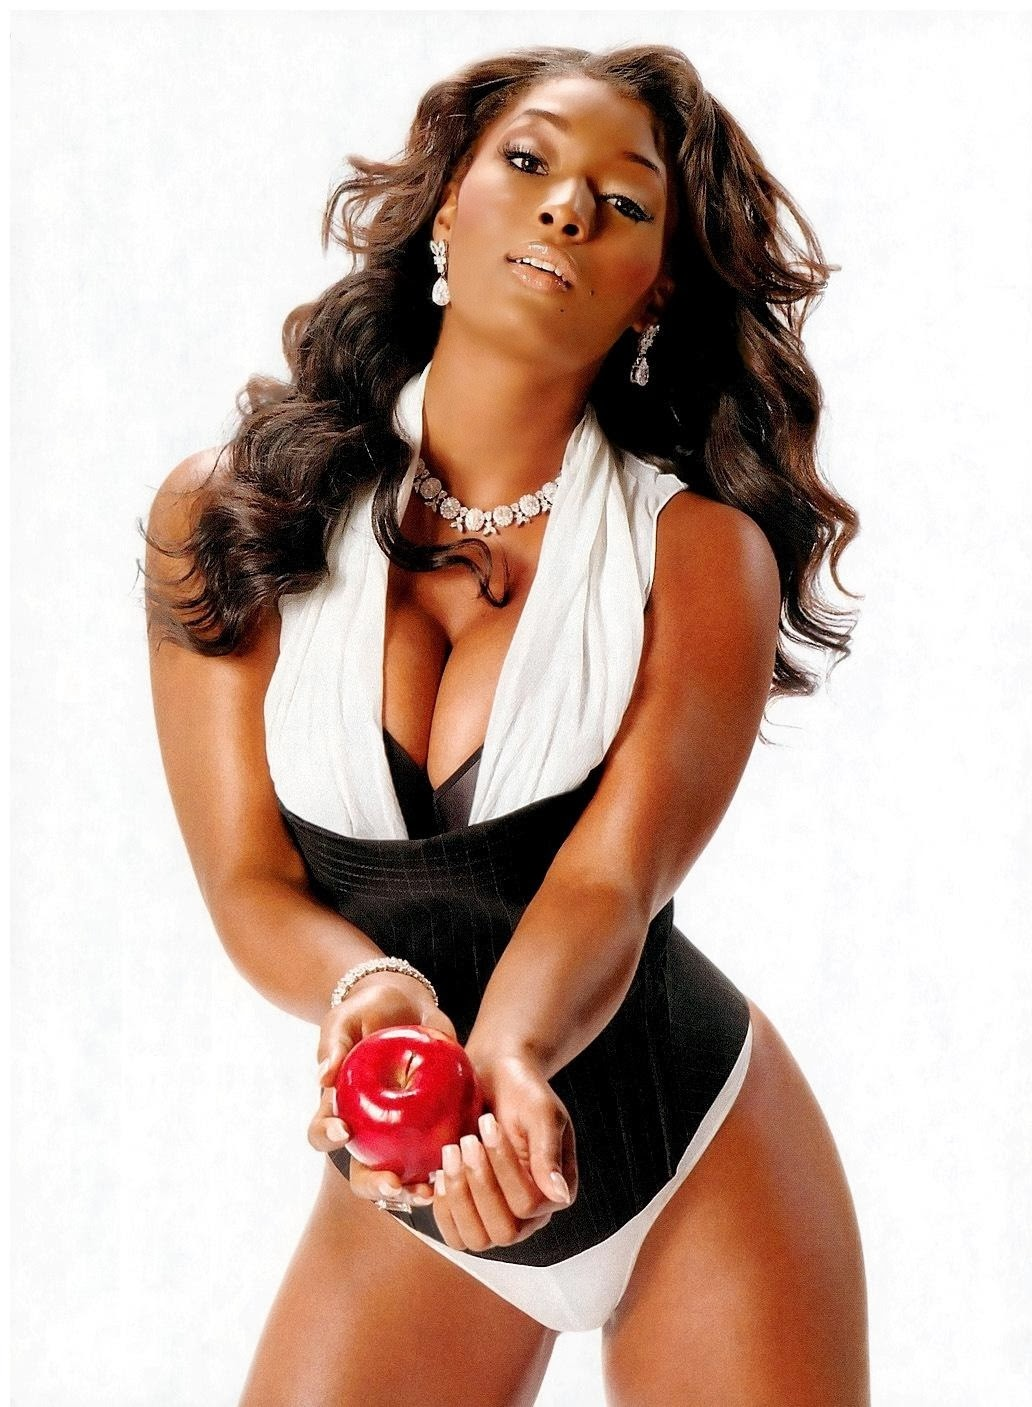 Jones Hot Pictures Plus Size Model Toccara